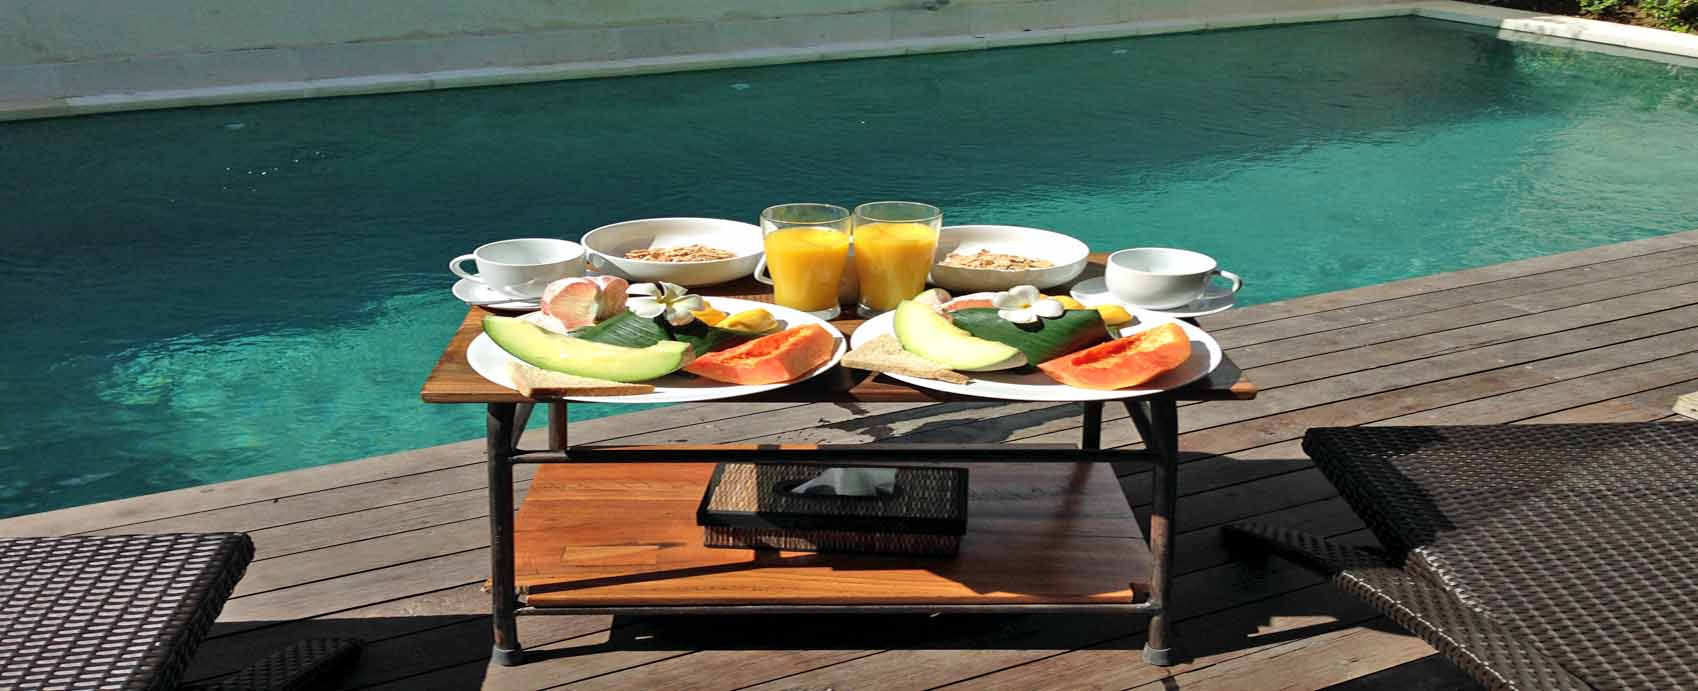 The Decks Bali Villas breakfast by the pool